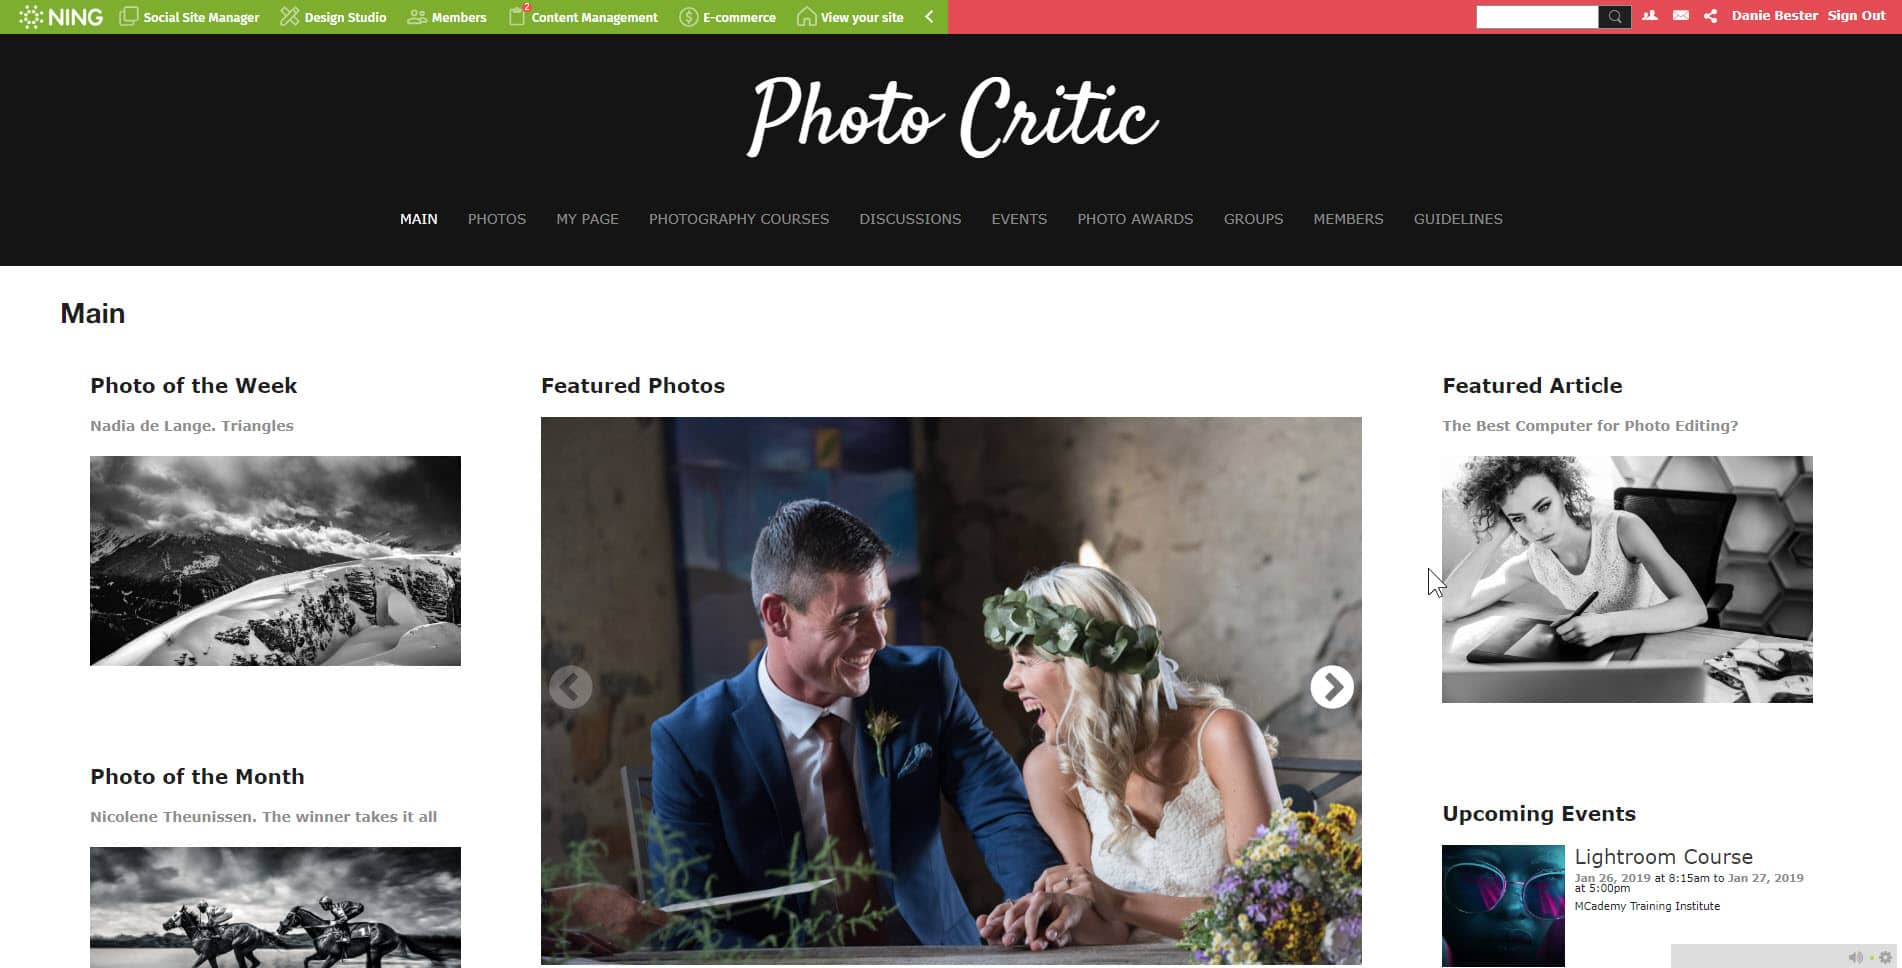 New Photo Critic Website